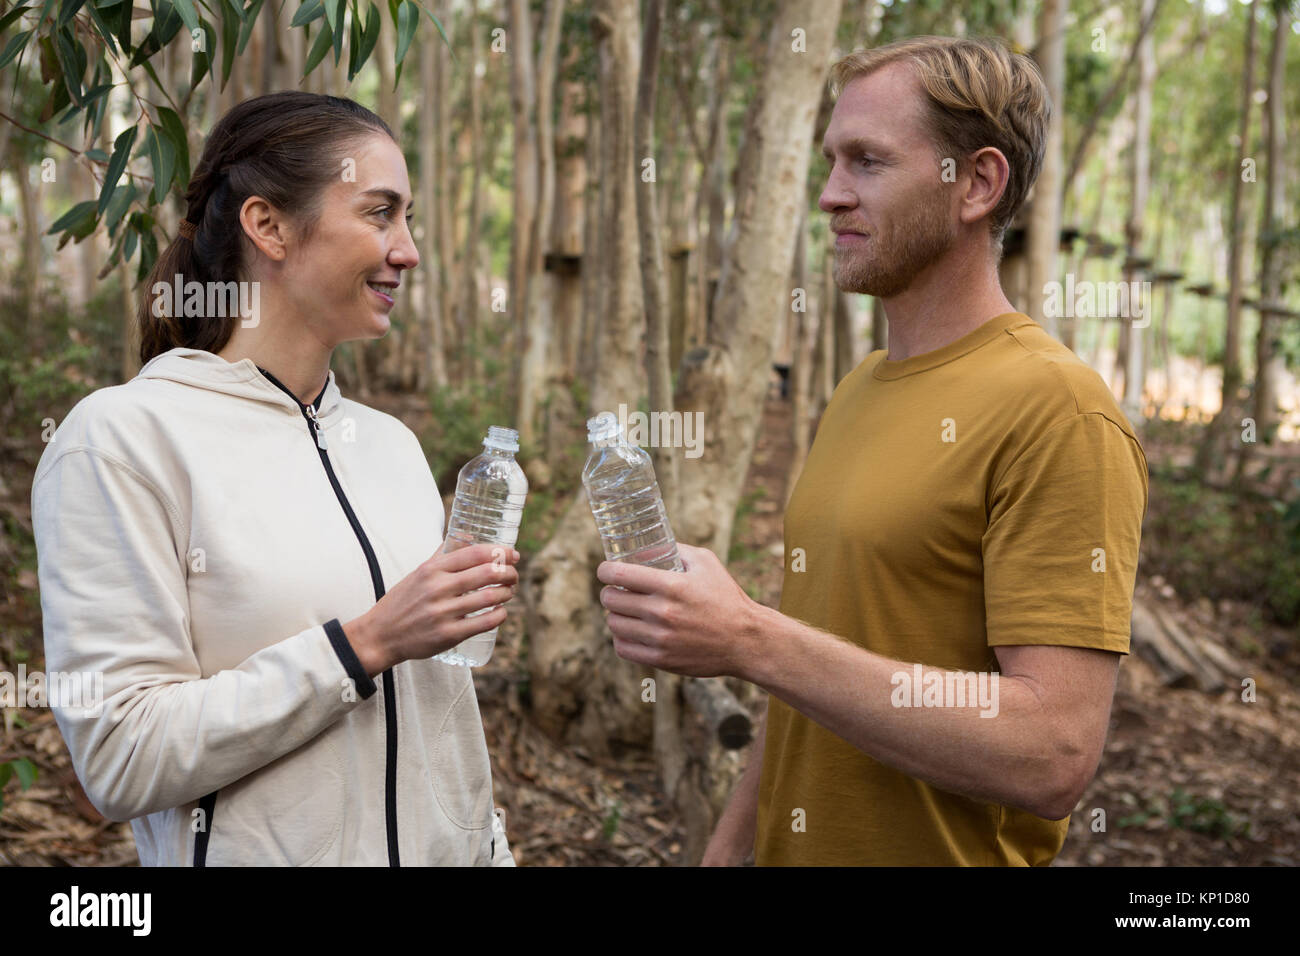 Smiling couple looking at each other holding water bottle in there hands in the forest - Stock Image